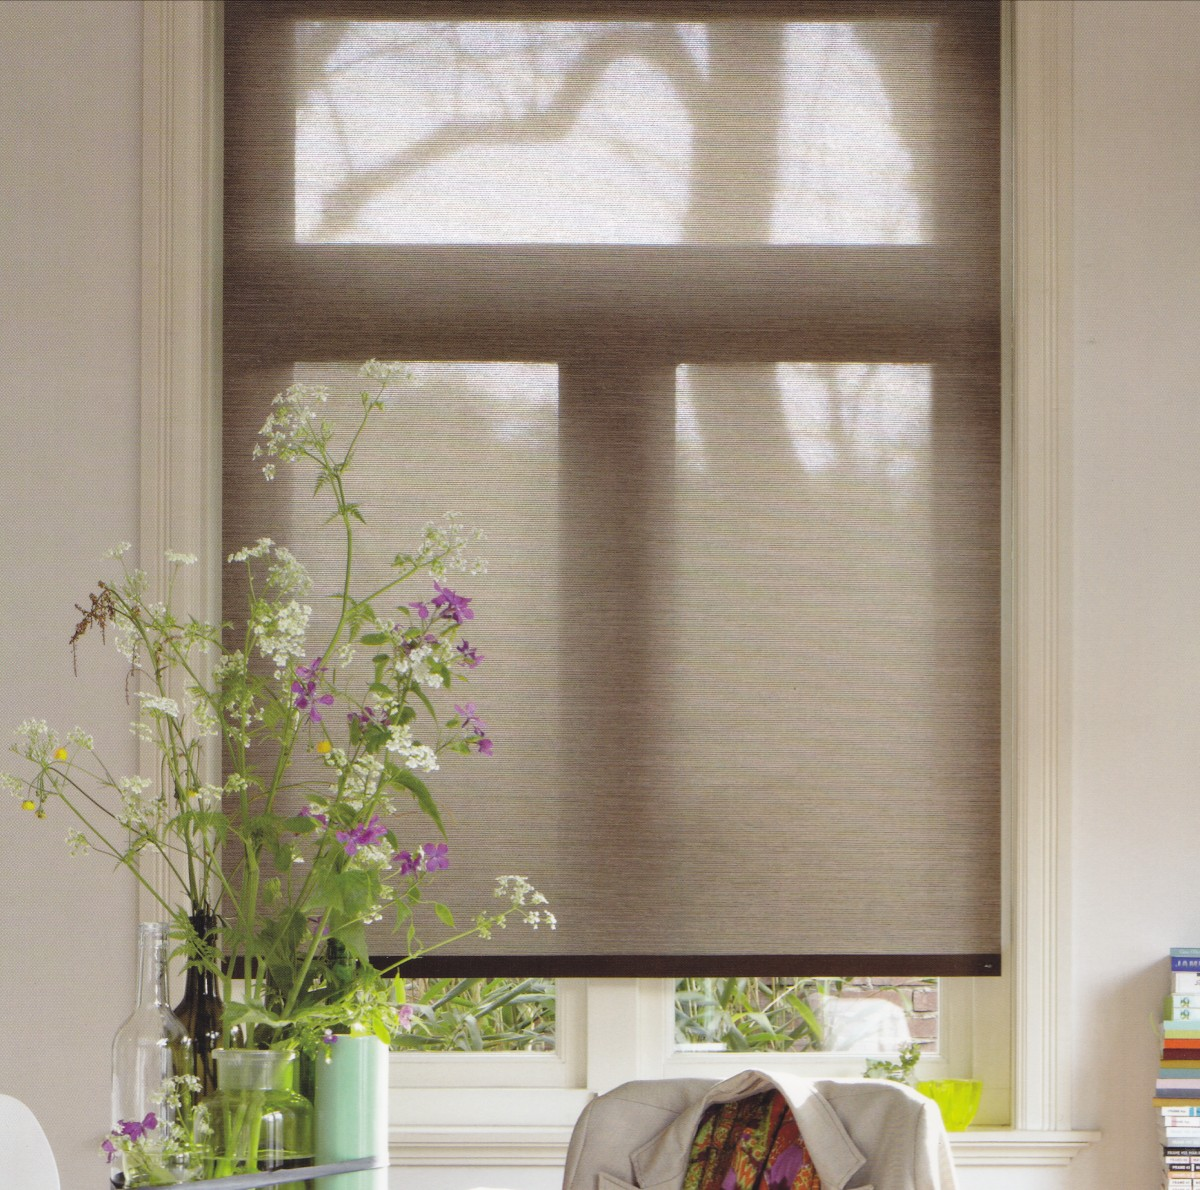 Deco 1 - Luxaflex Sheer Natural Roller Blind